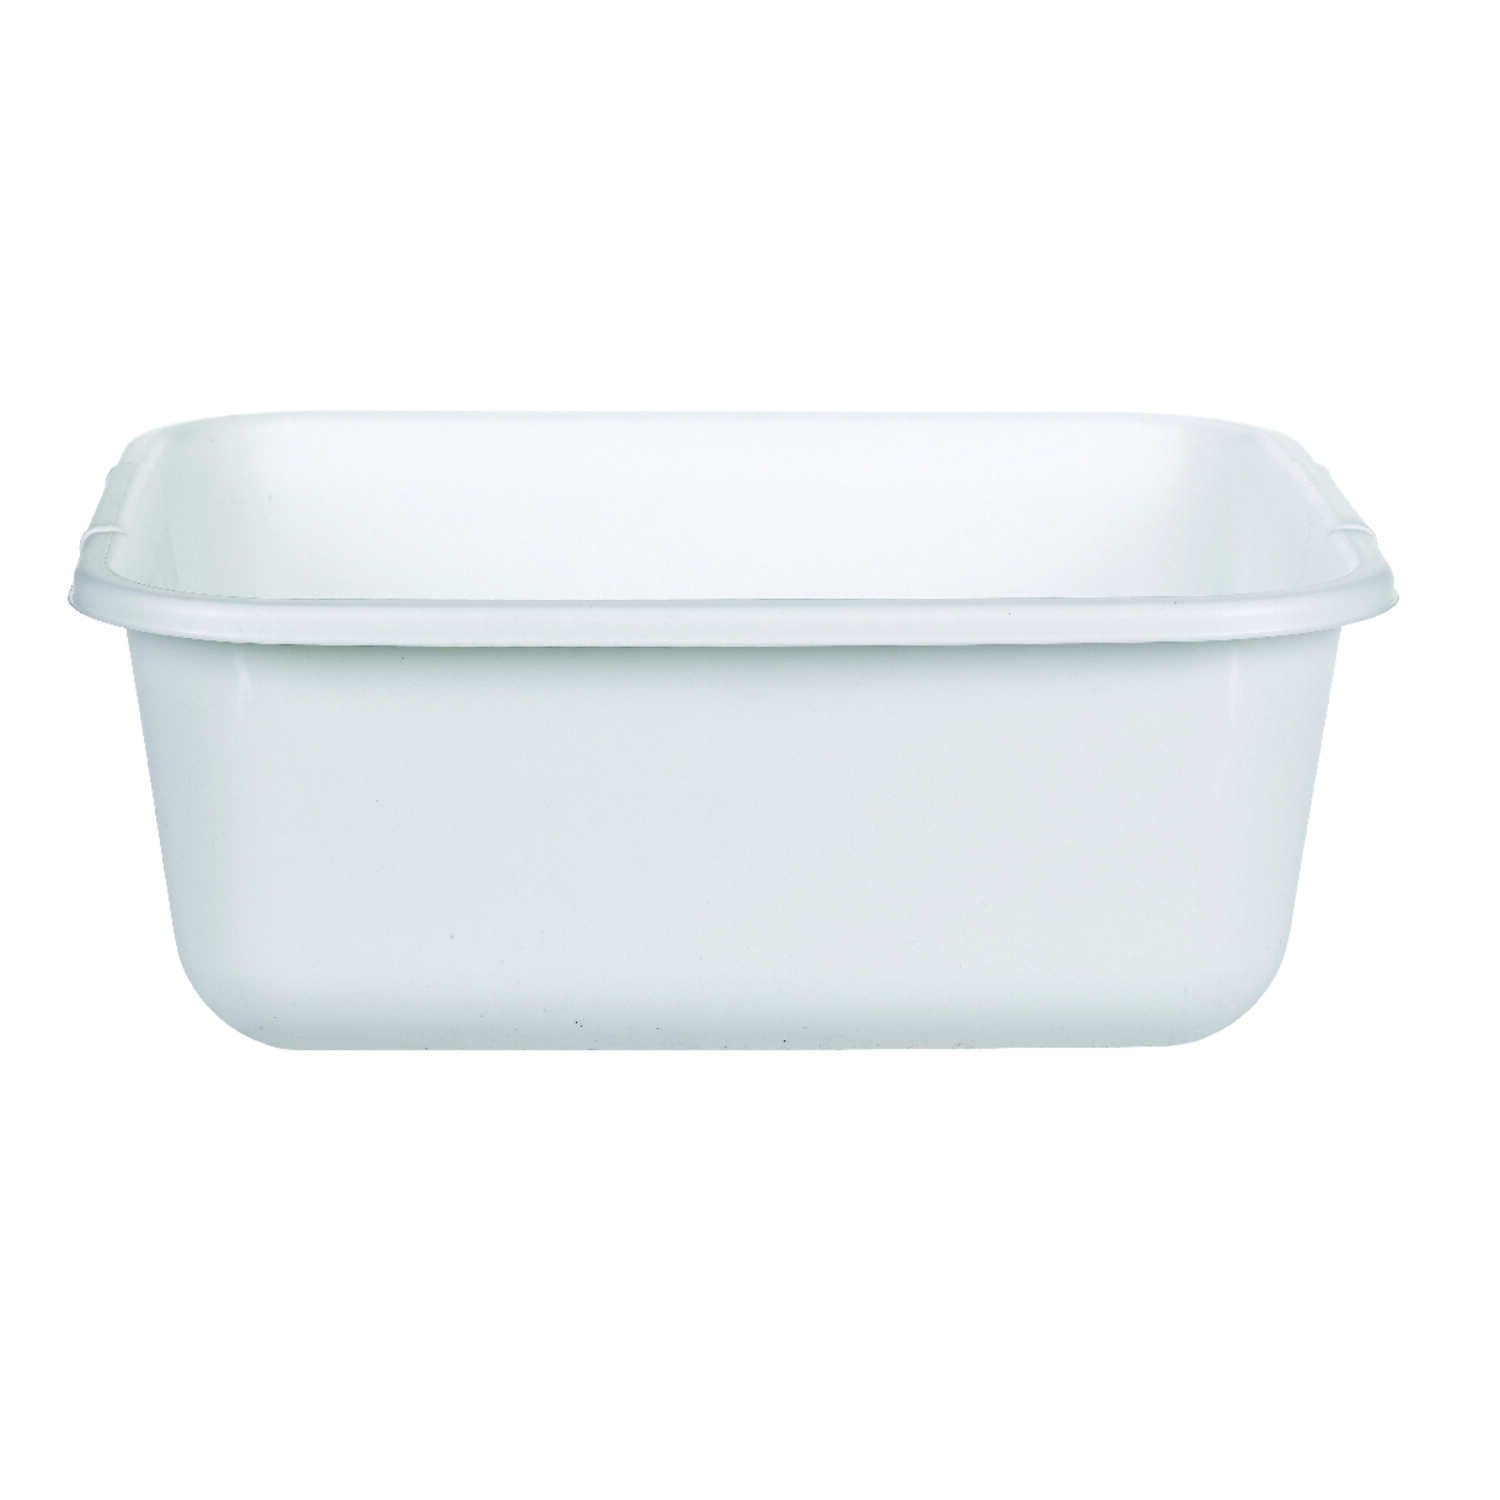 Rubbermaid  11.5 in. W x 13.5 in. L Dishpan